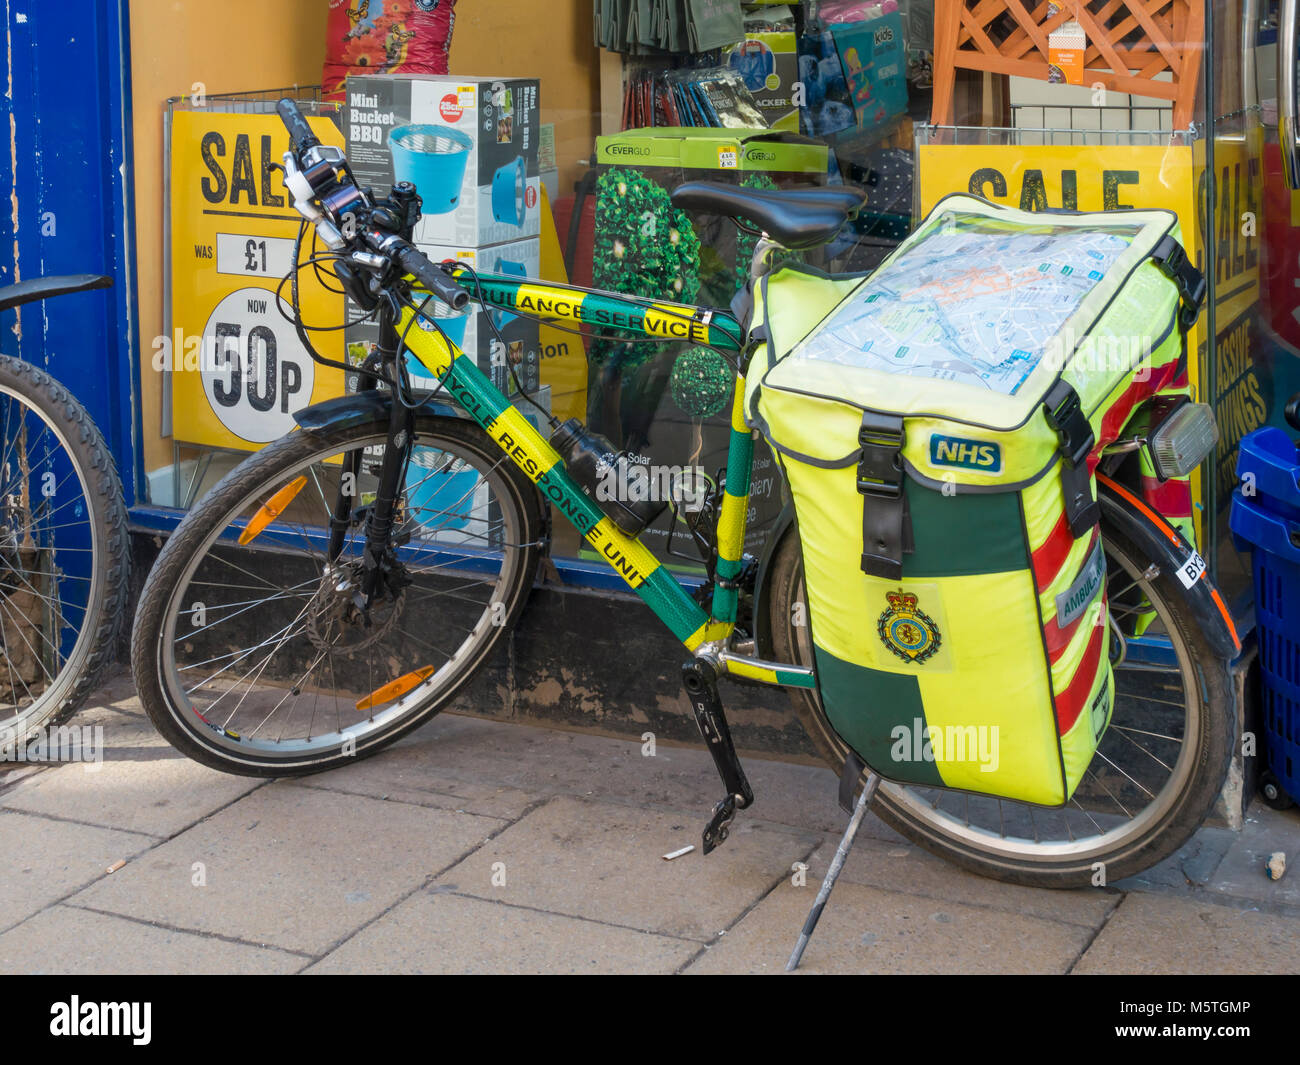 NHS National Health Service Emergency Response Ambulance service  bicycle for providing support in crowded city Stock Photo